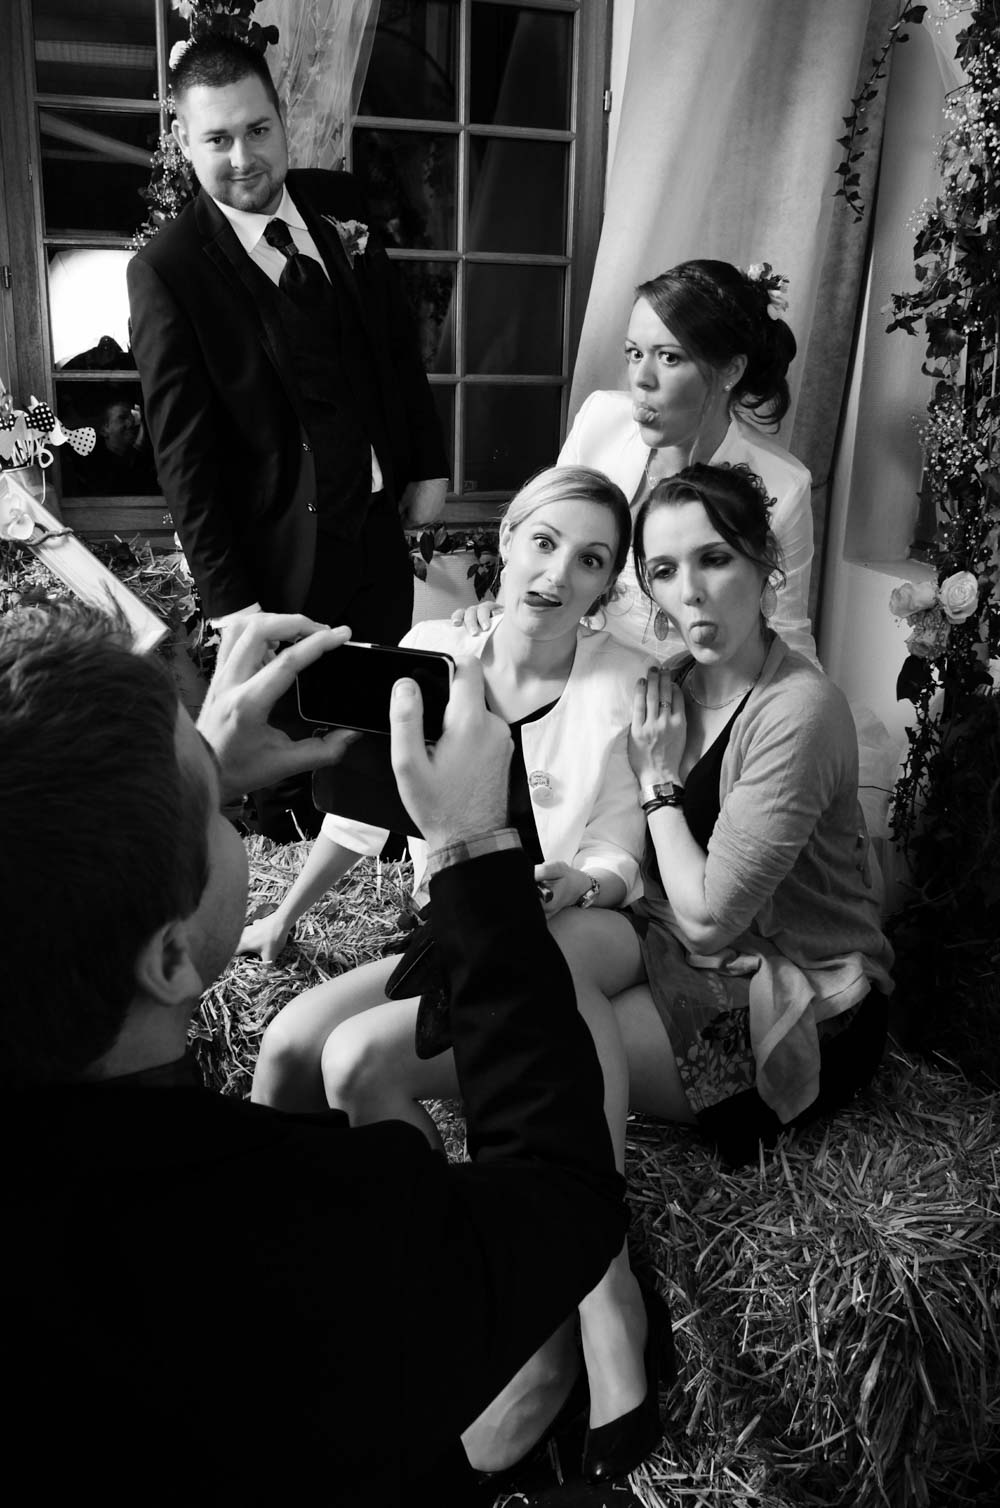 310-photobooth-mariage-soiree